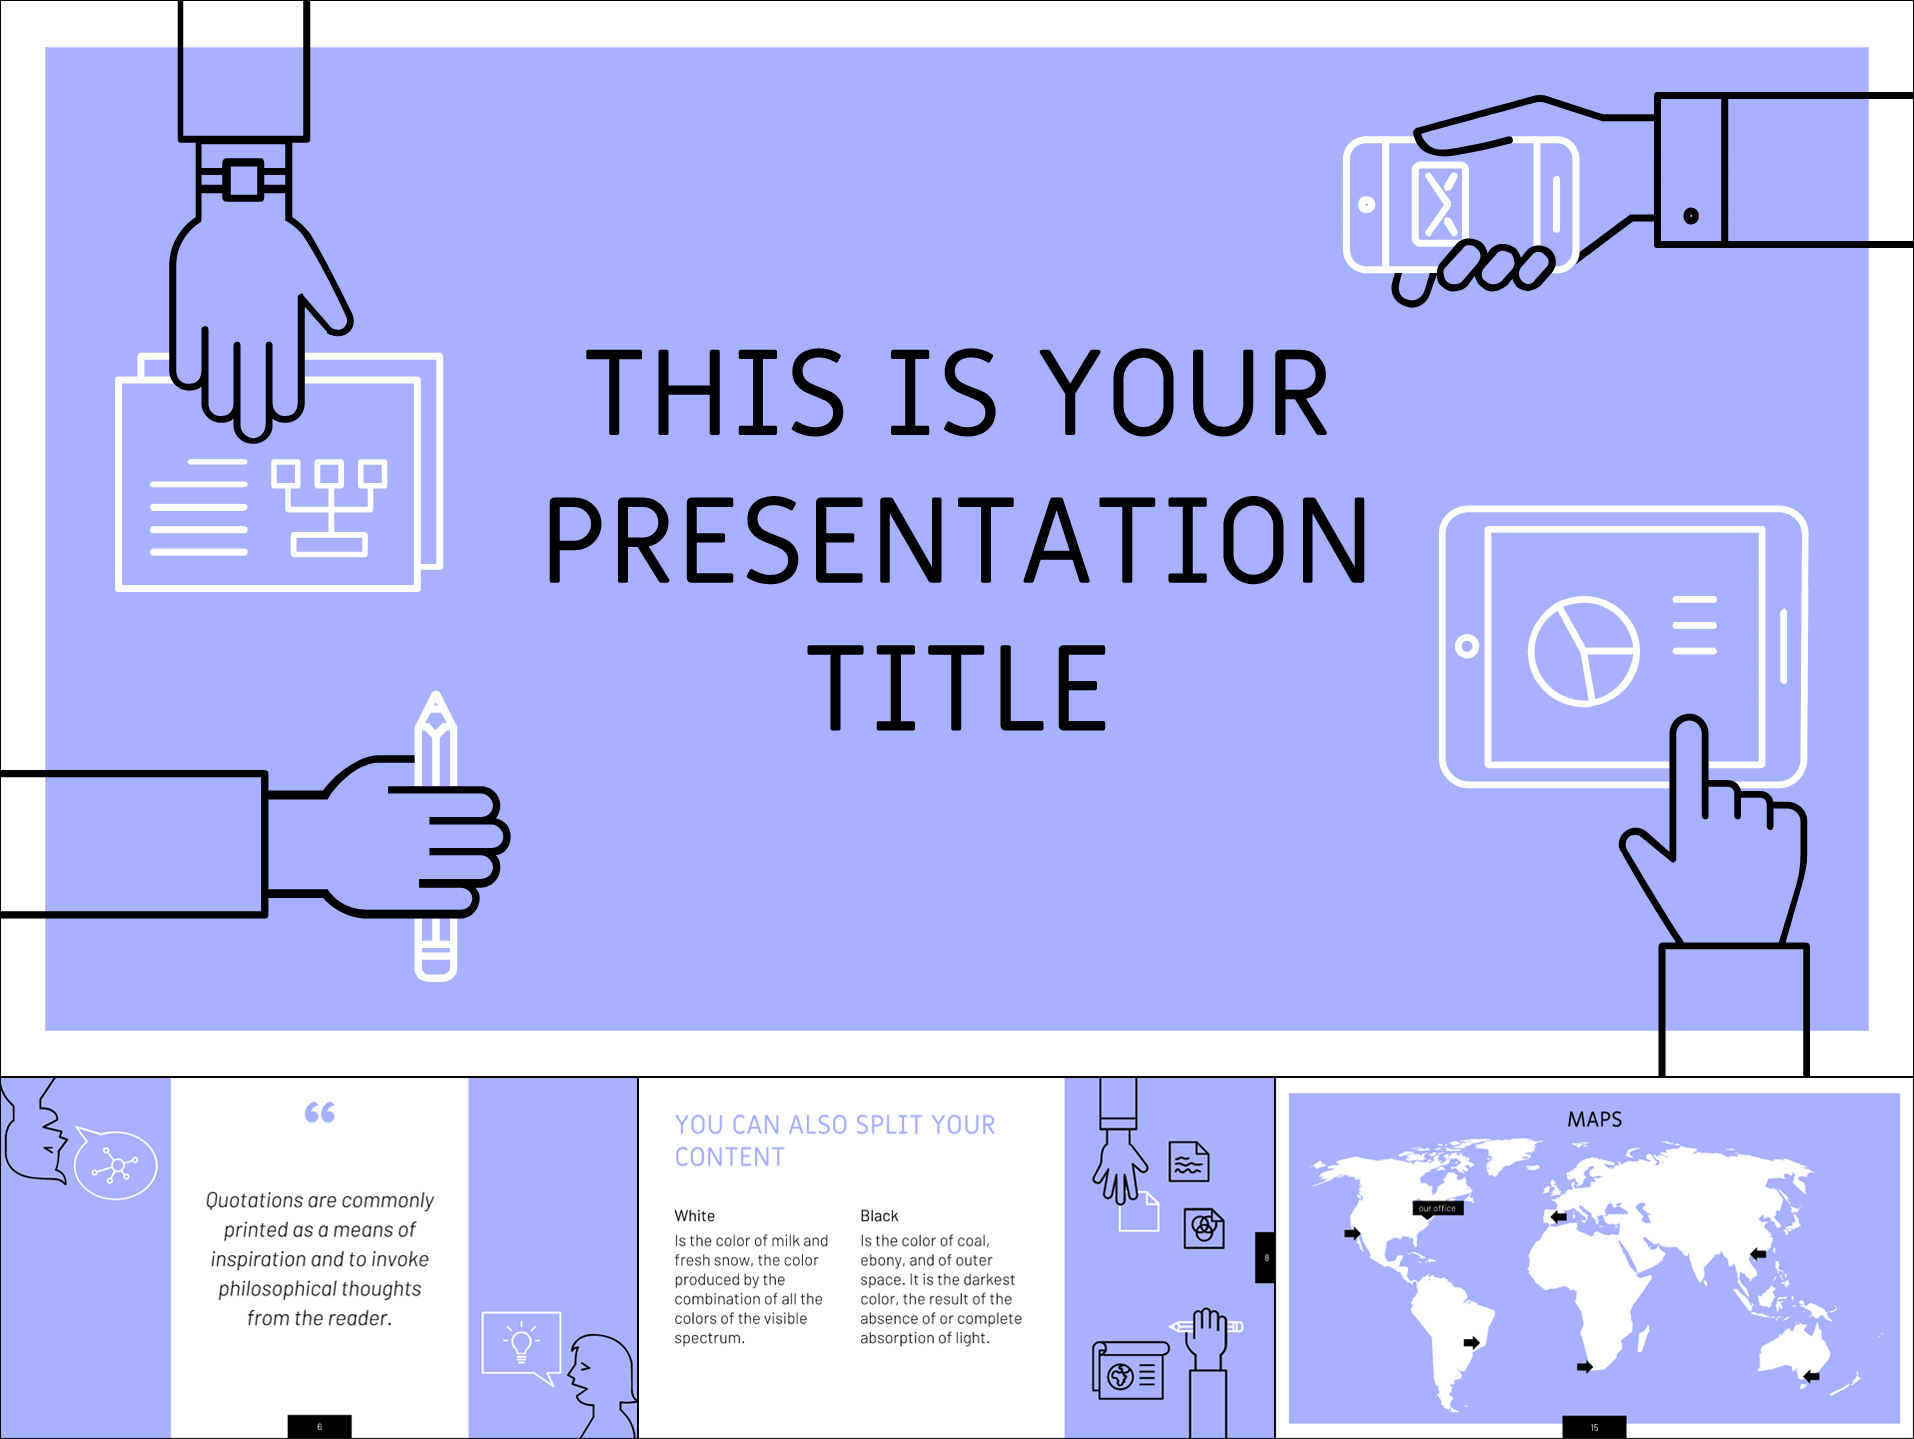 Free Google Slides Templates For Your Next Presentation - Fresh powerpoint business plan template scheme